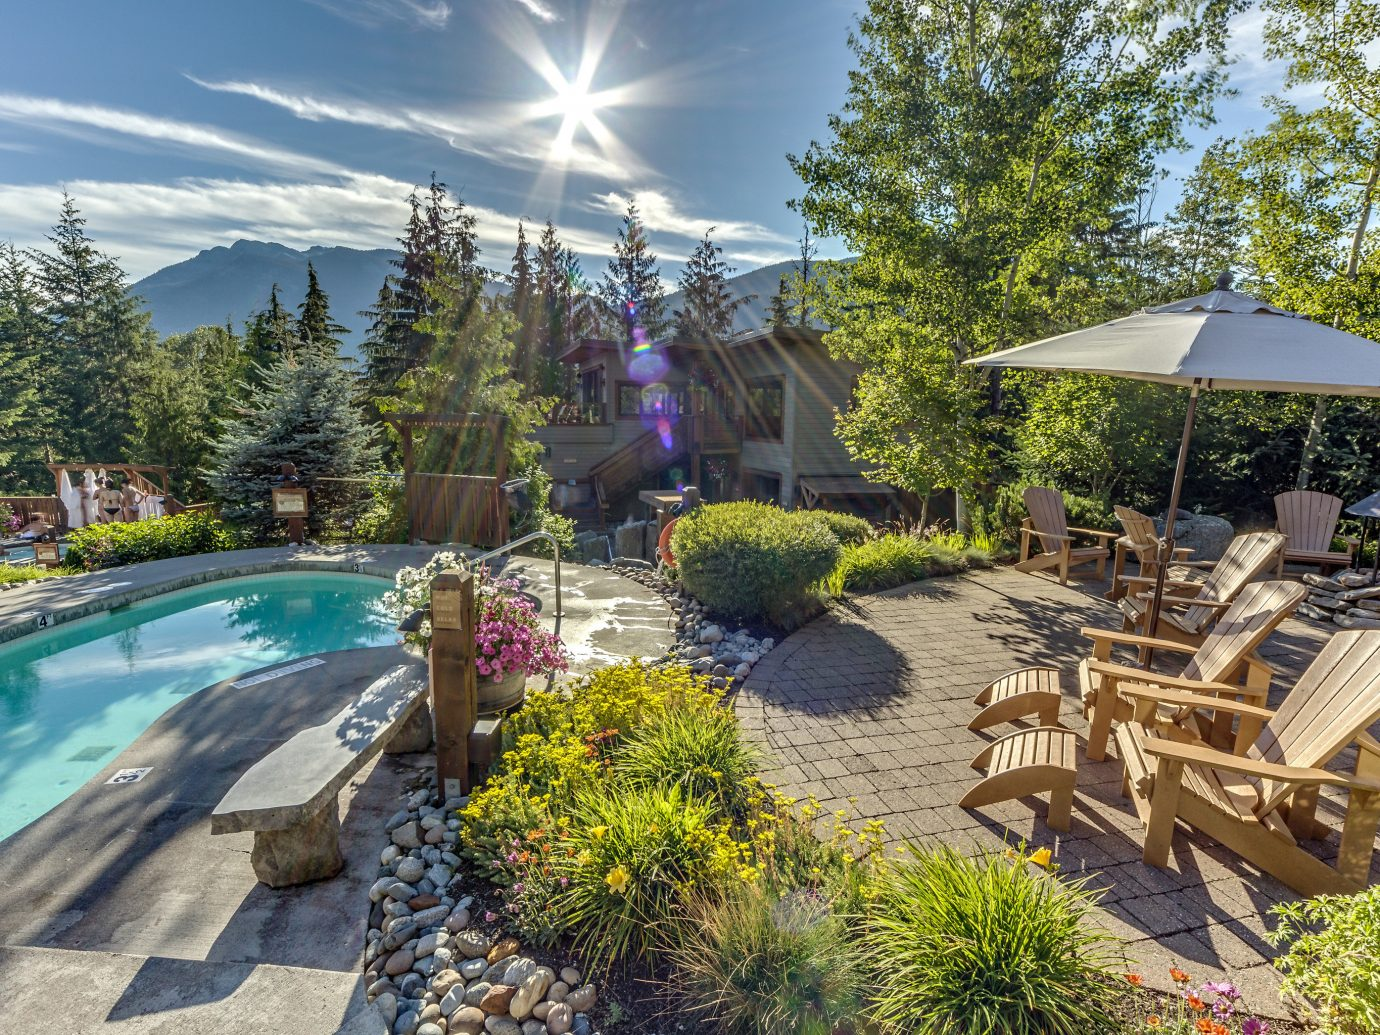 Trip Ideas Winter tree outdoor property swimming pool backyard estate real estate leisure Resort home landscape landscaping outdoor structure water yard plant resort town Patio water feature recreation amenity Villa Garden several